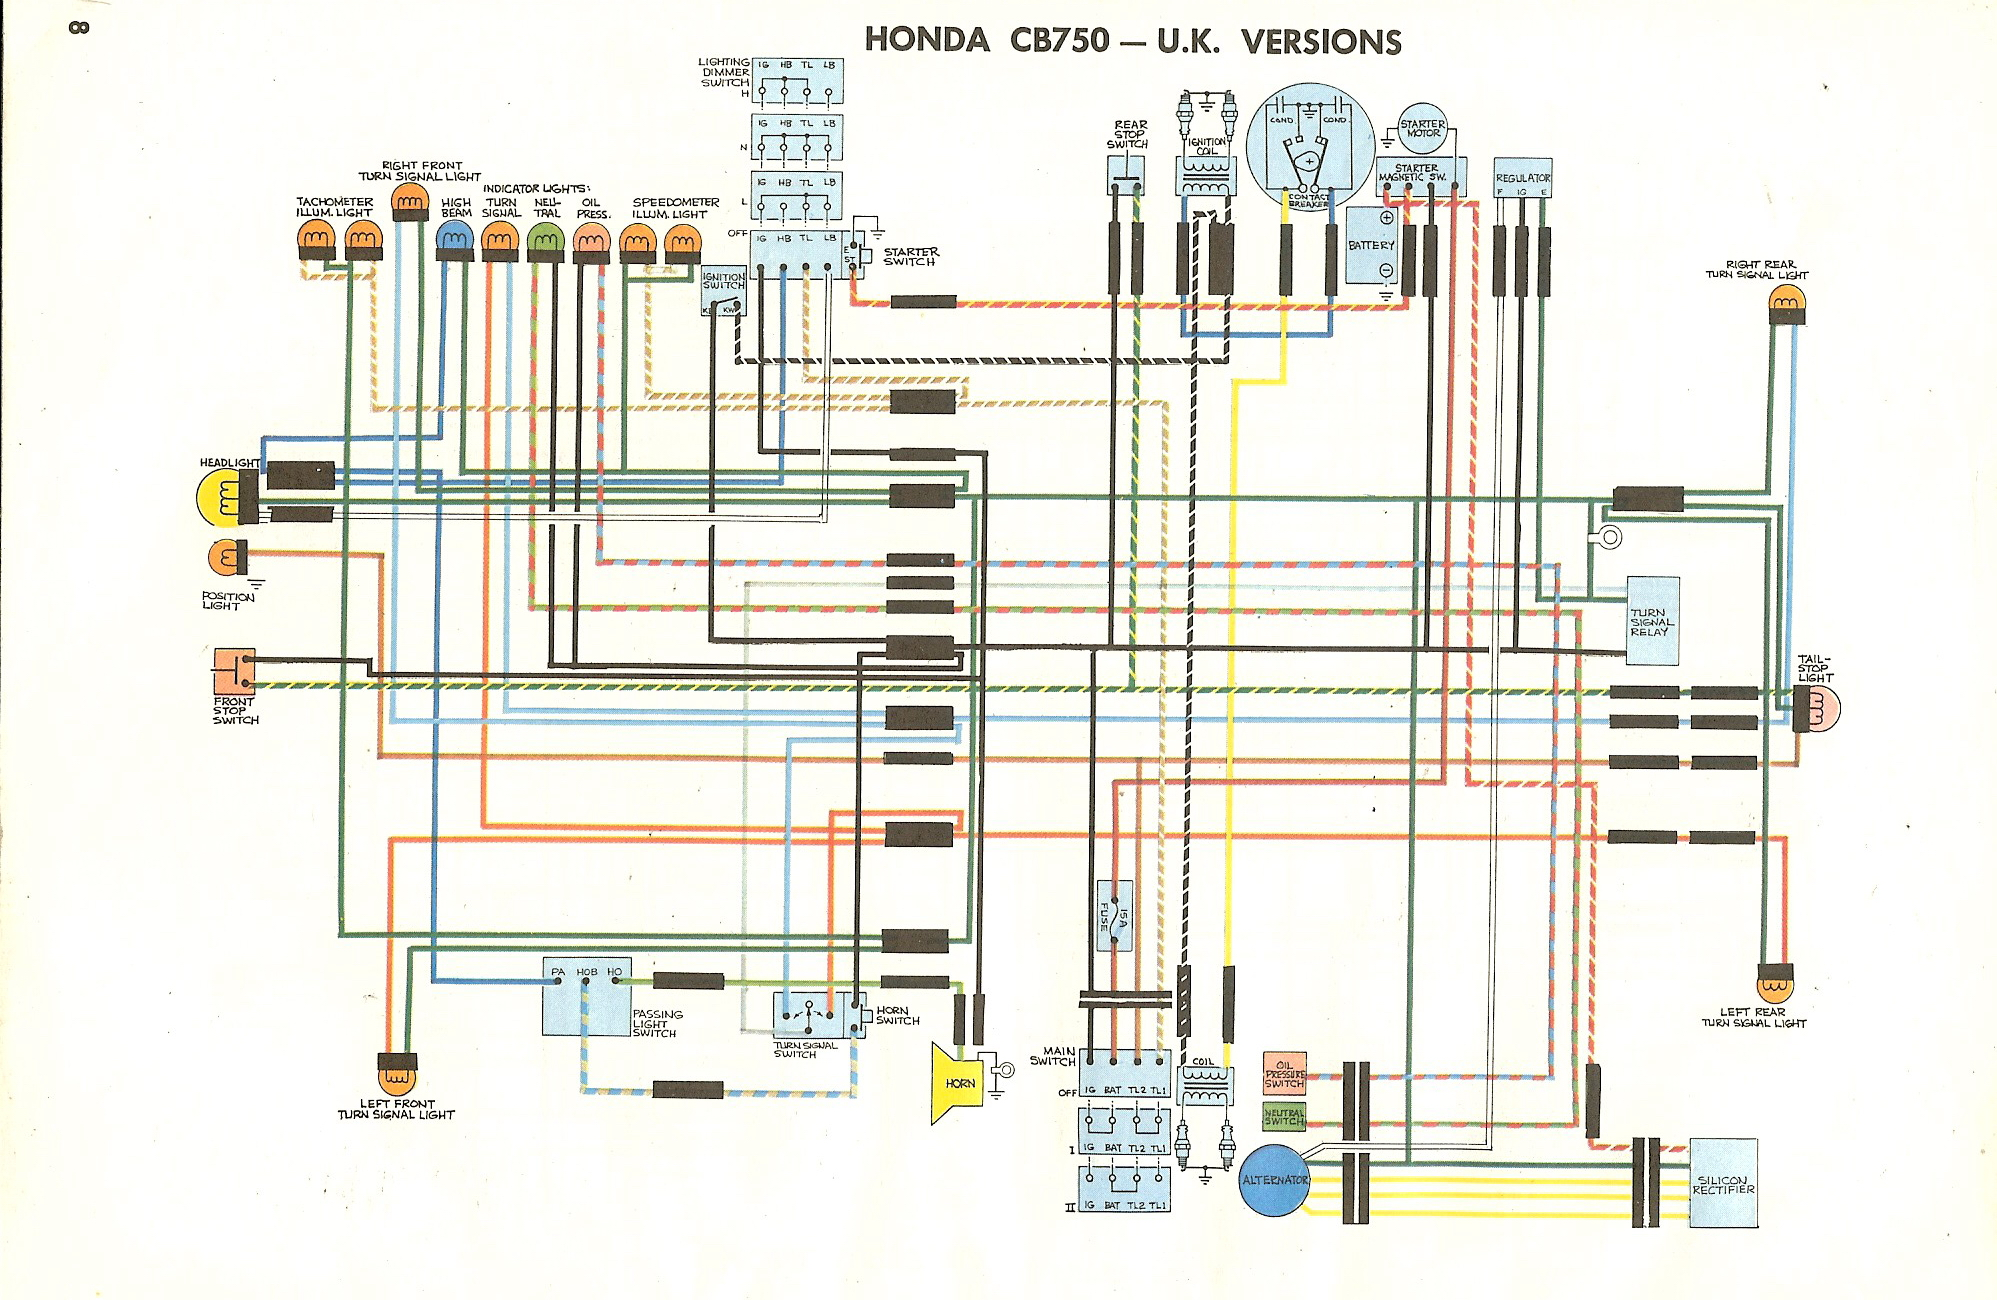 WD750UK cb750k wiring diagram motorcycle ignition wiring diagram \u2022 wiring honda cb160 wiring diagram at gsmportal.co